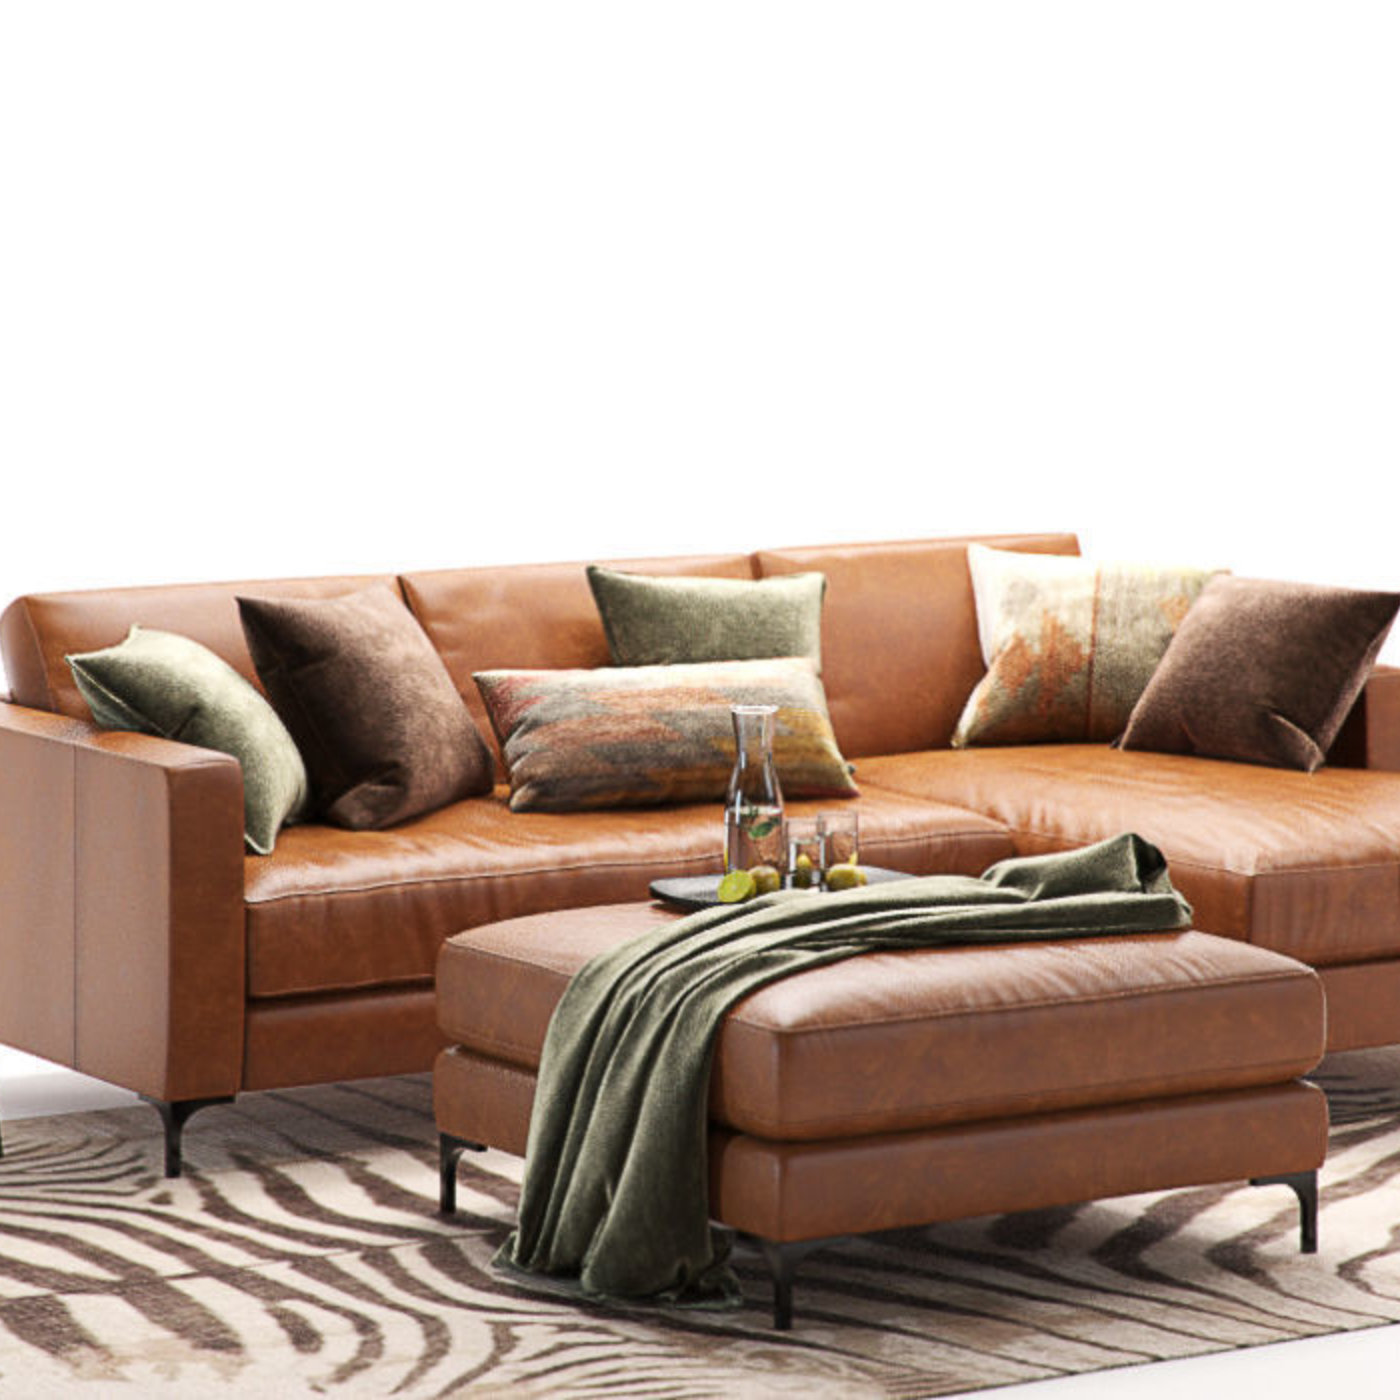 Furniture Visualization Pottery Barn Jake Leather Sofa